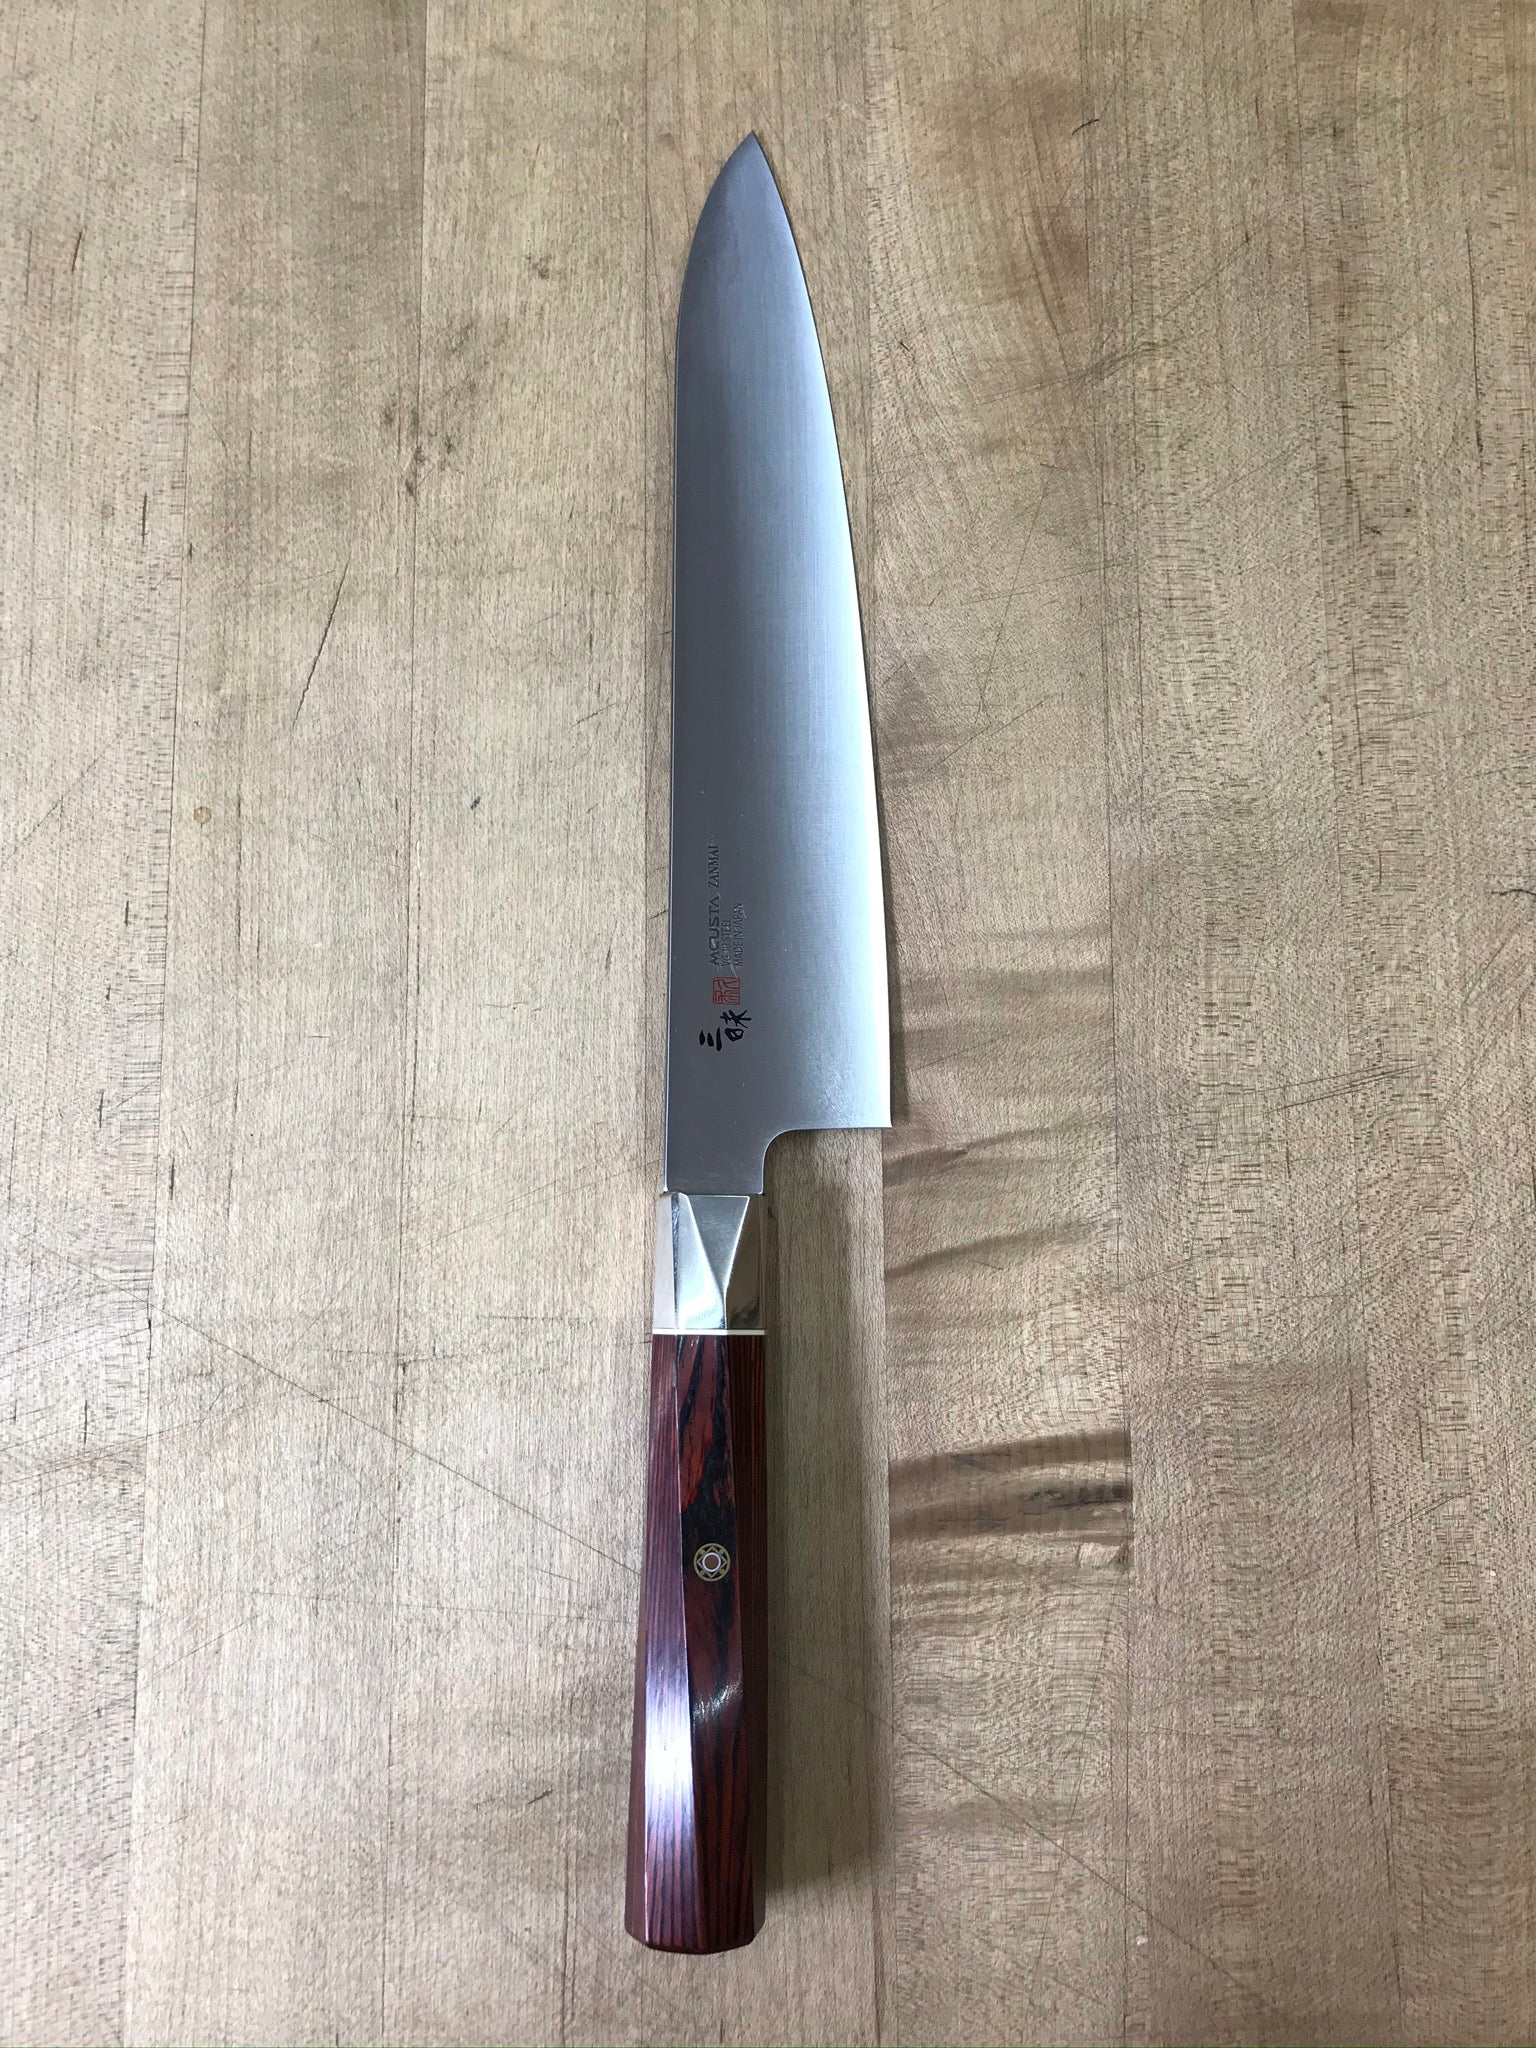 Mcusta Zanmai Supreme Twisted 210mm Gyuto